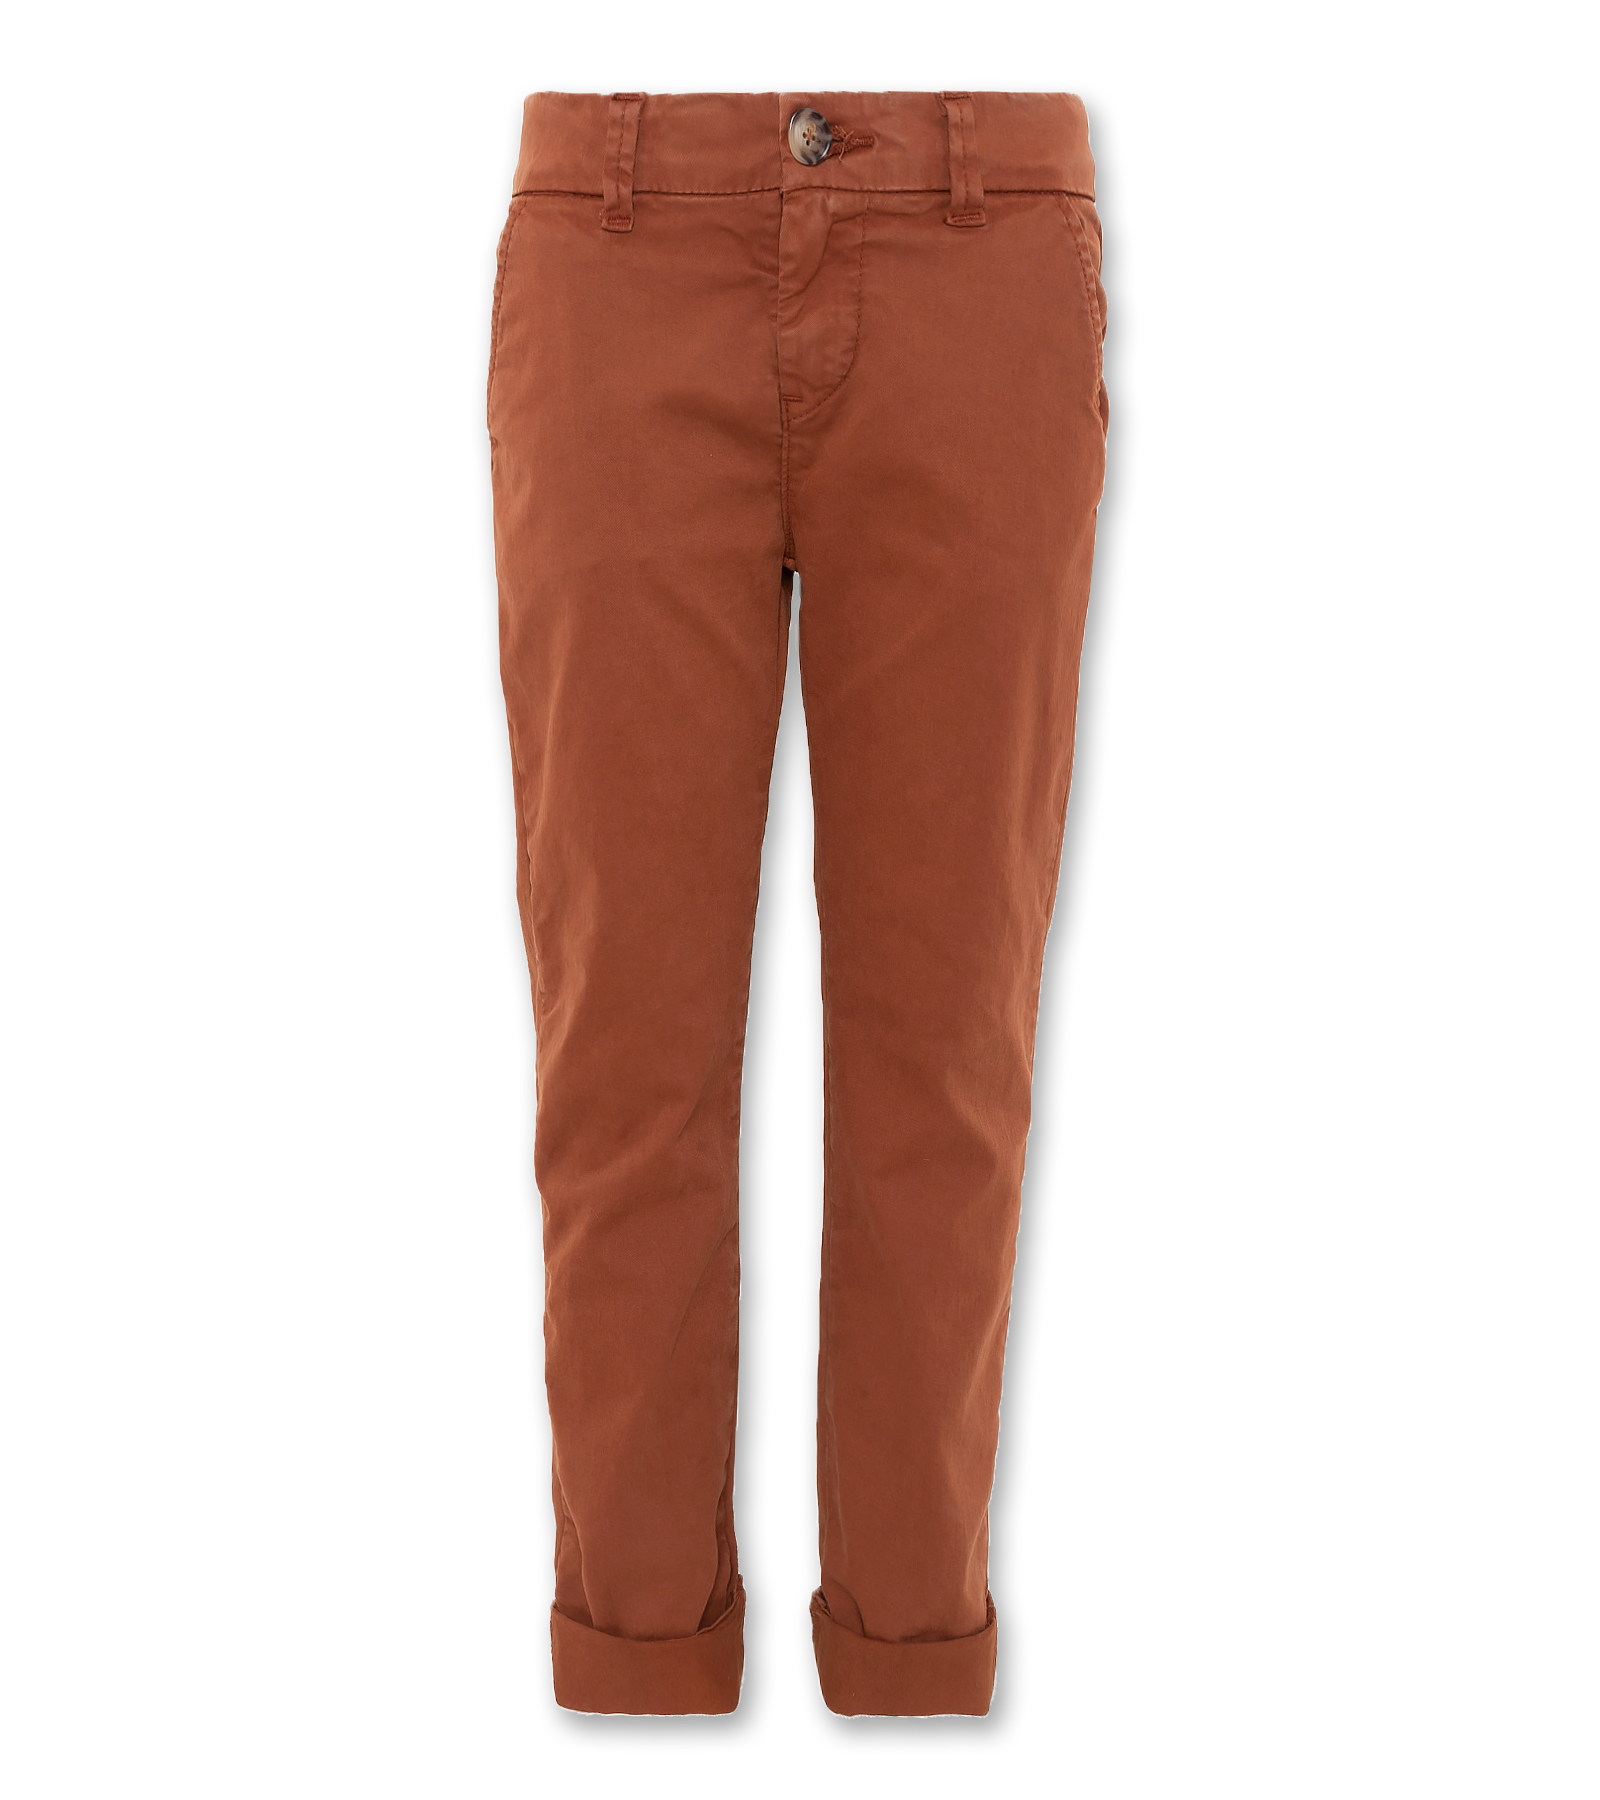 Ao76 Barry Chino Pants